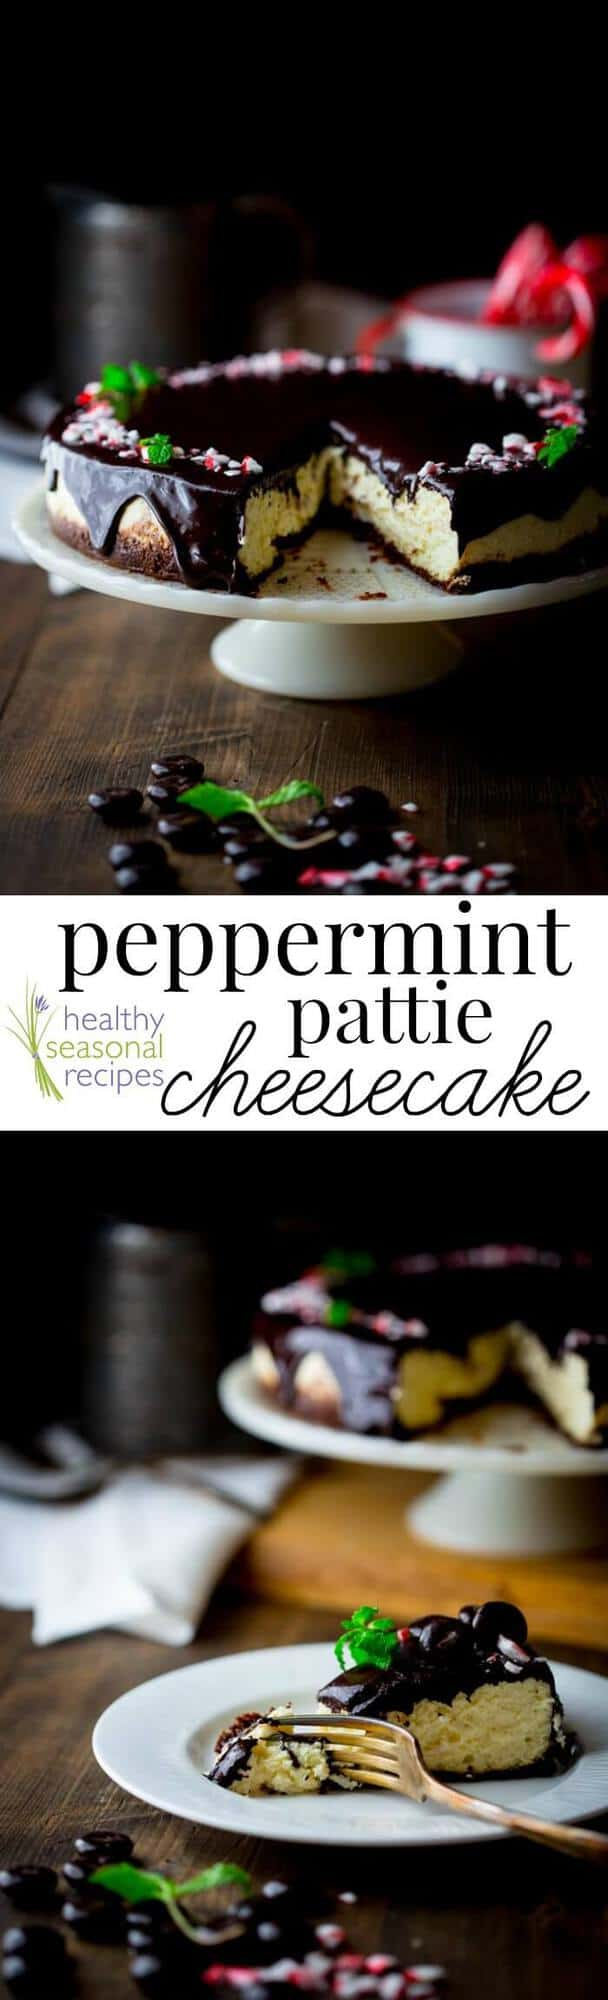 Cheesecake with peppermint candies photo collage with text